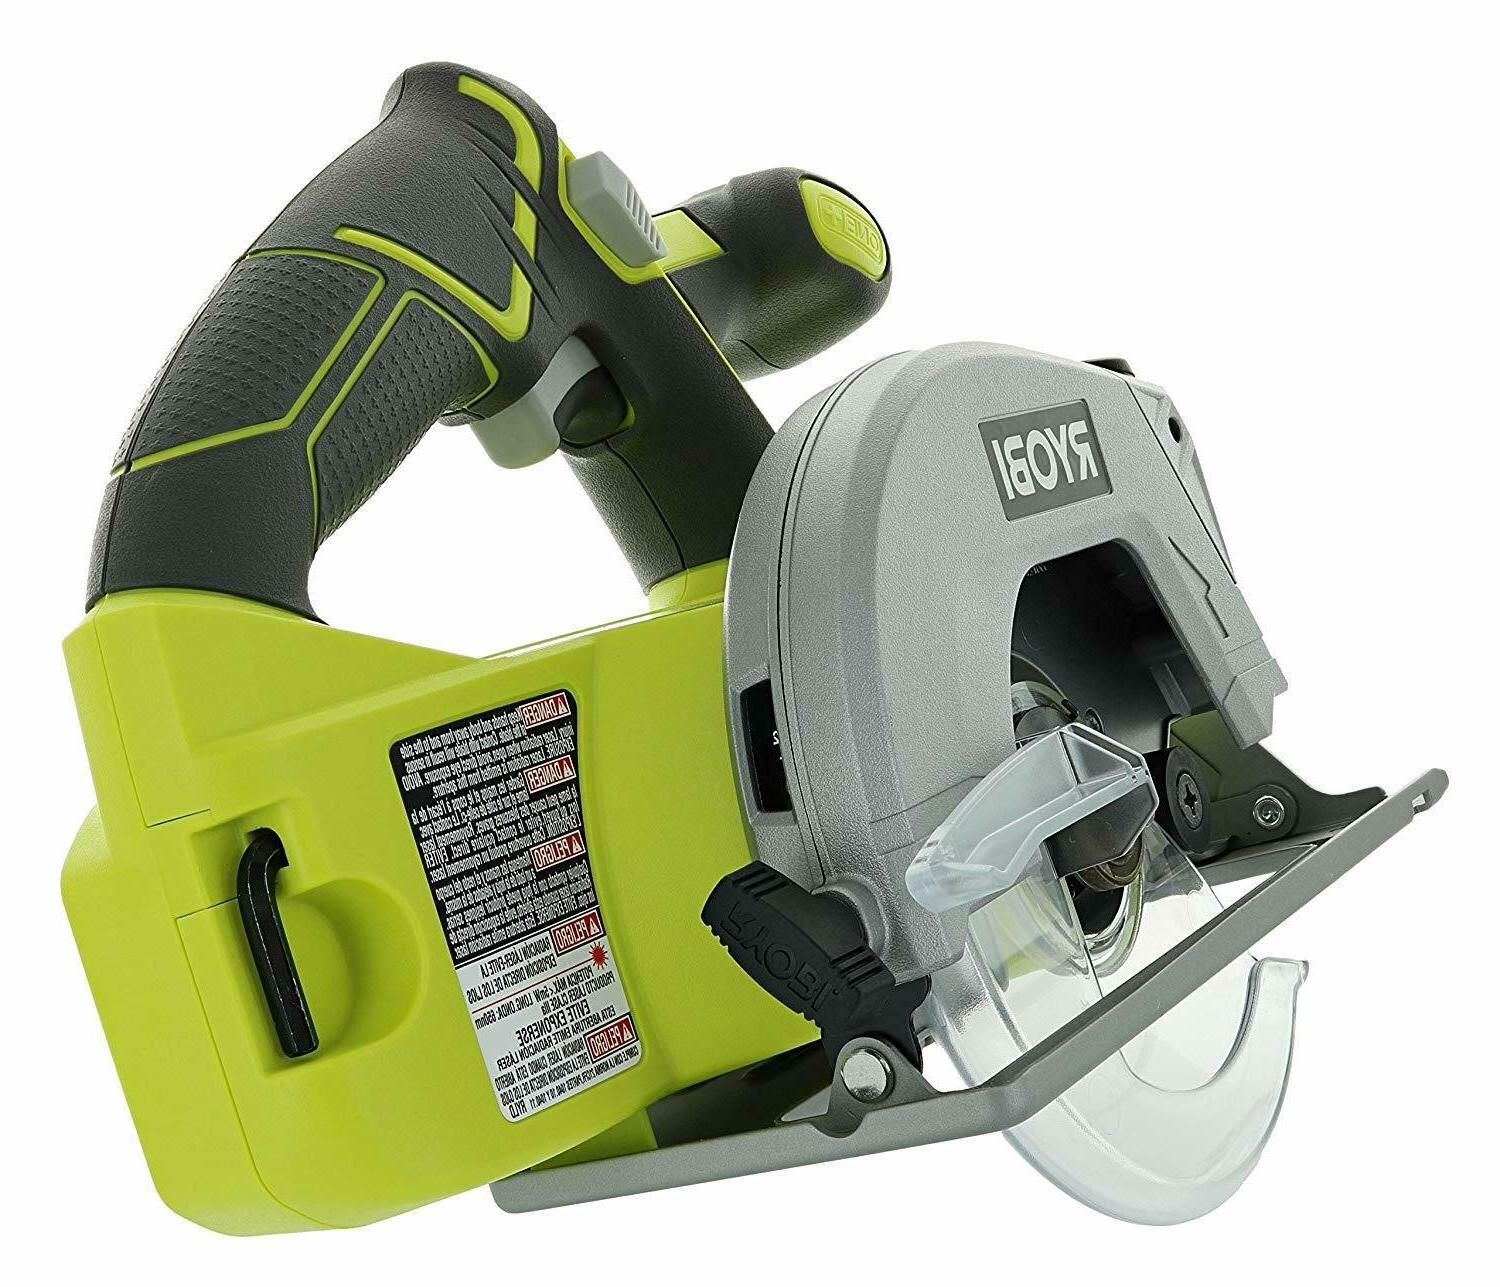 Ryobi Cordless with Guide Blade